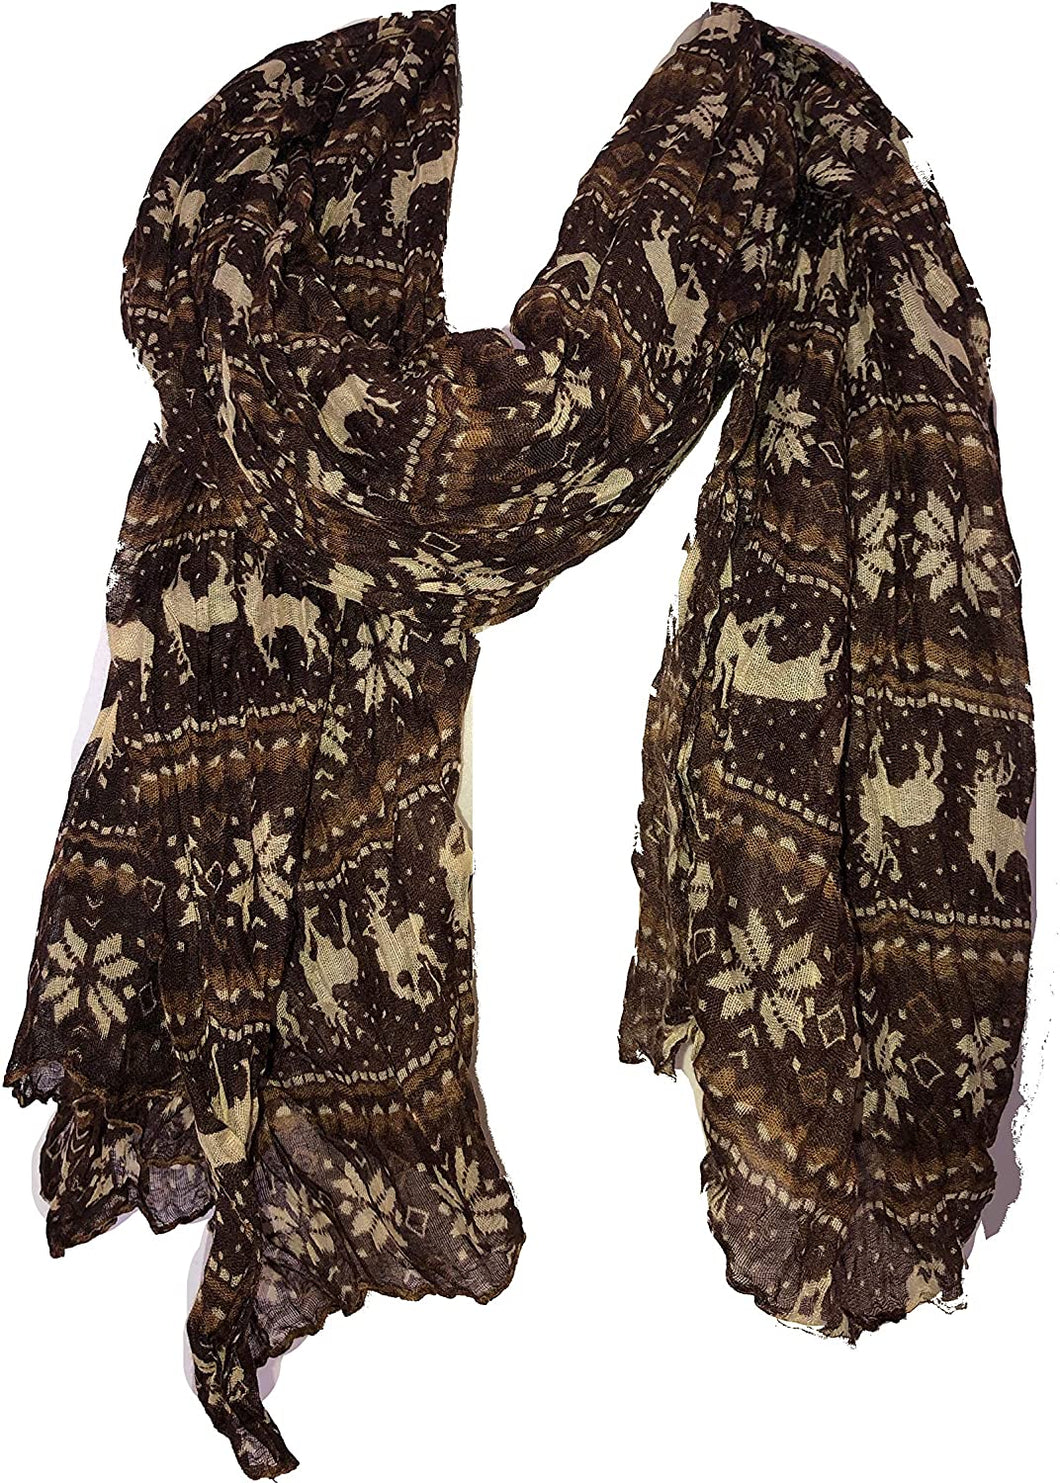 Pamper Yourself Now Brown Christmas Scarf with Deers and Snowflake Design Lovely Warm Winter Scarf Fantastic Gift